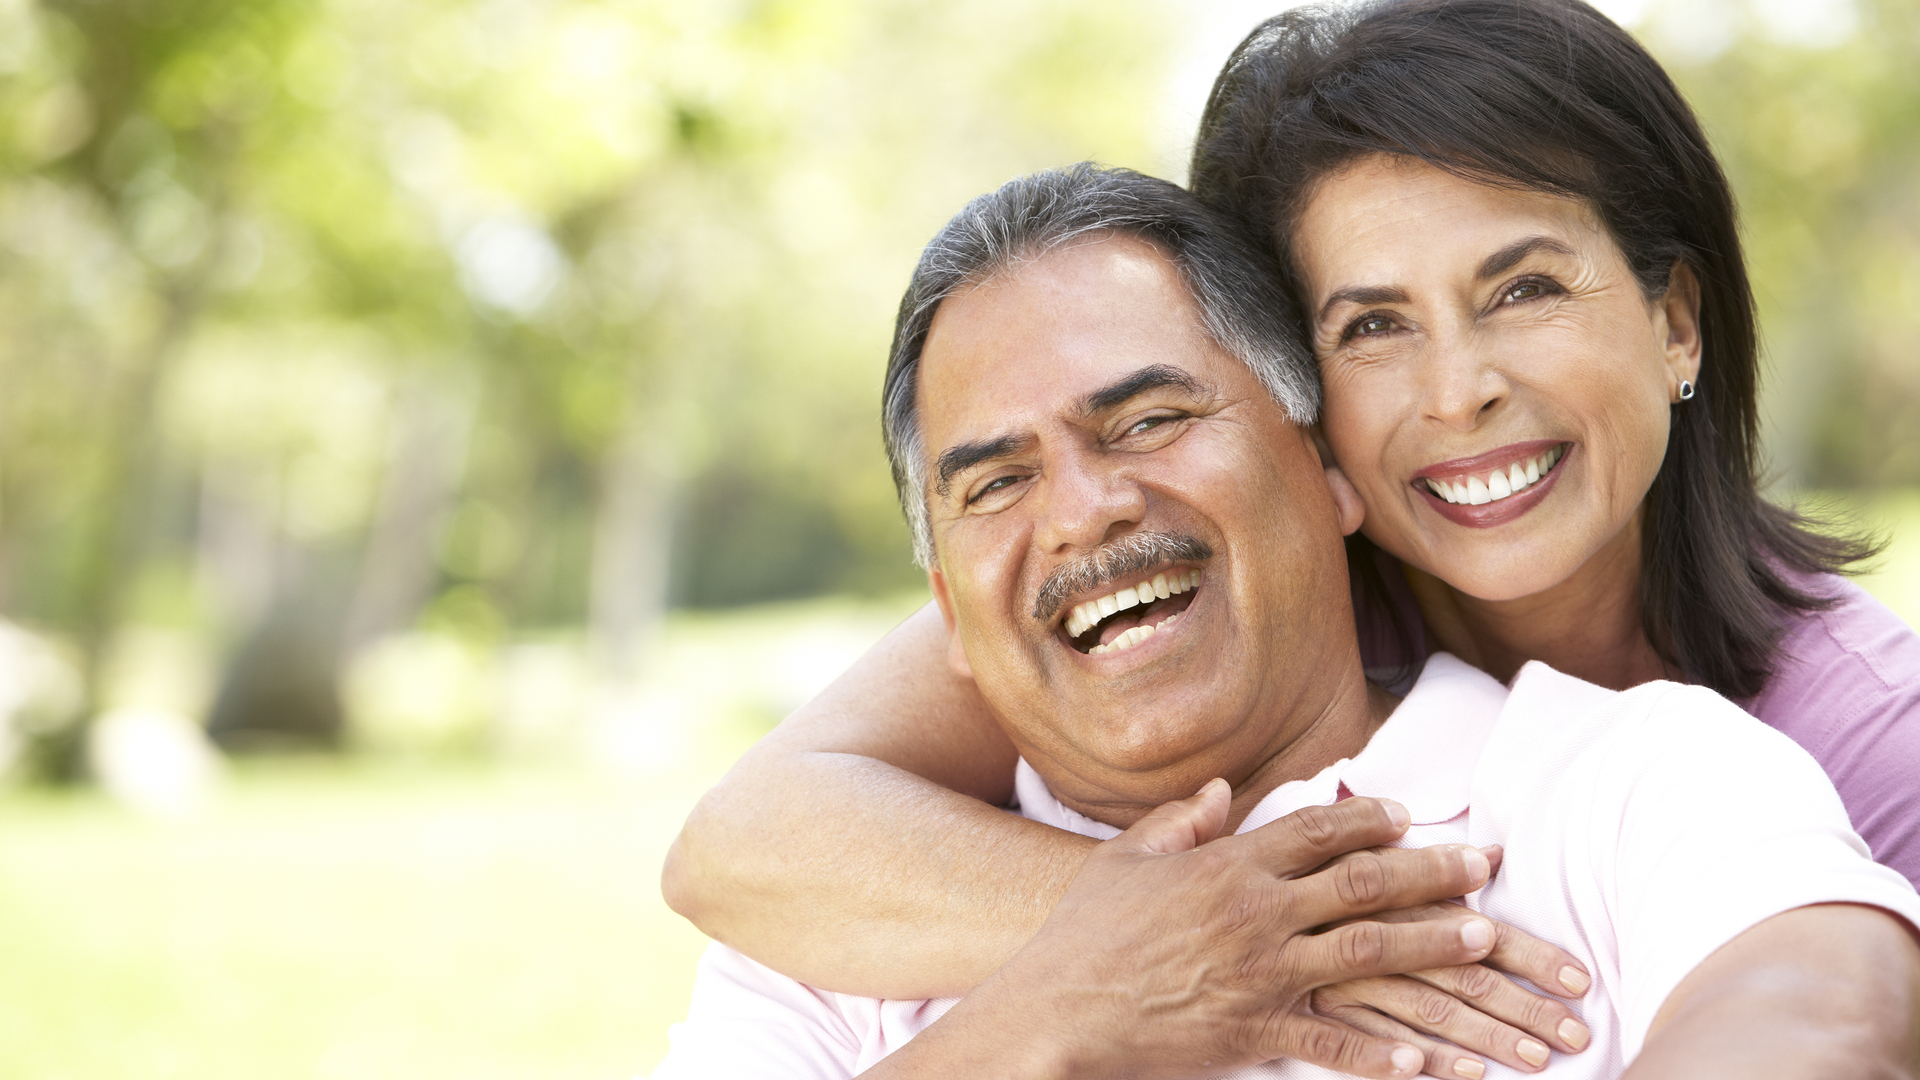 Image of couple hugging and smiling outdoors. Using straight catheters usually allows for a normally active lifestyle.